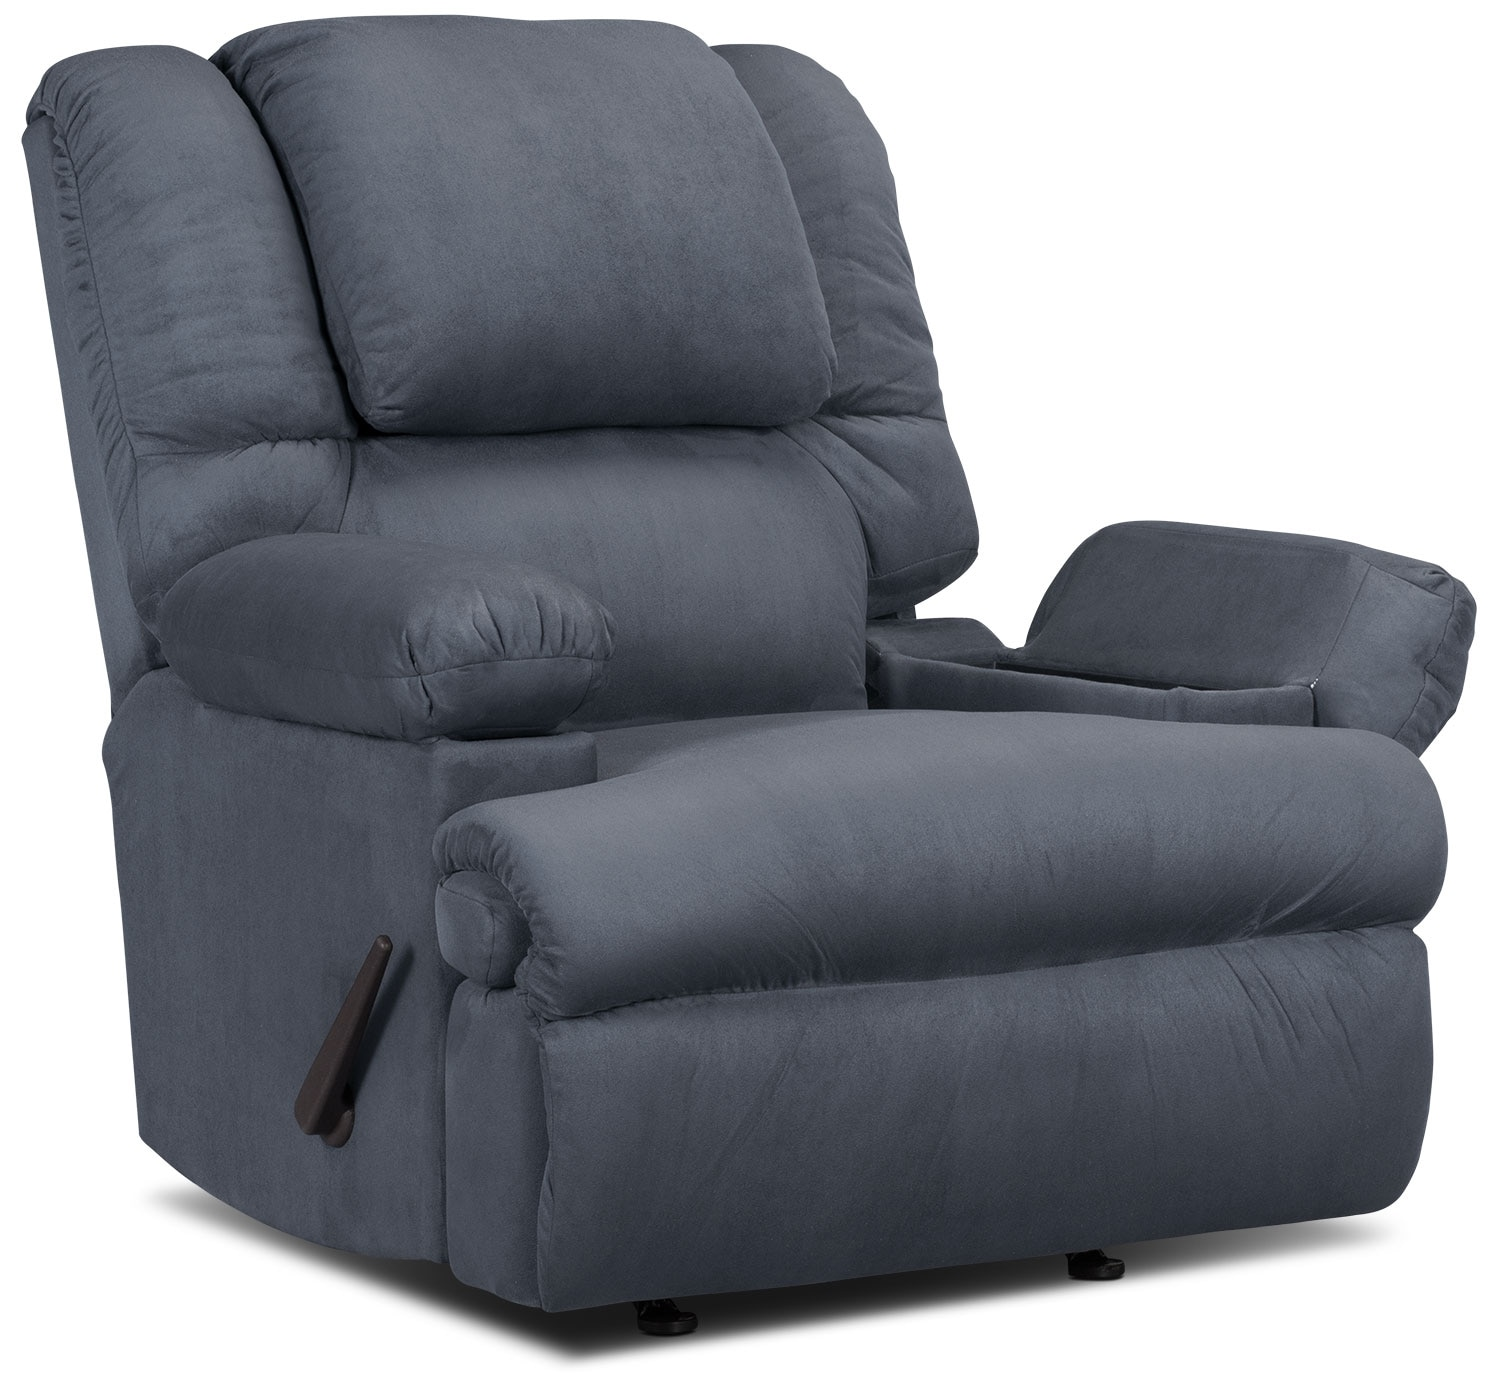 Designed2B Recliner 5598 Padded Suede Rocker with Storage Arms - Navy